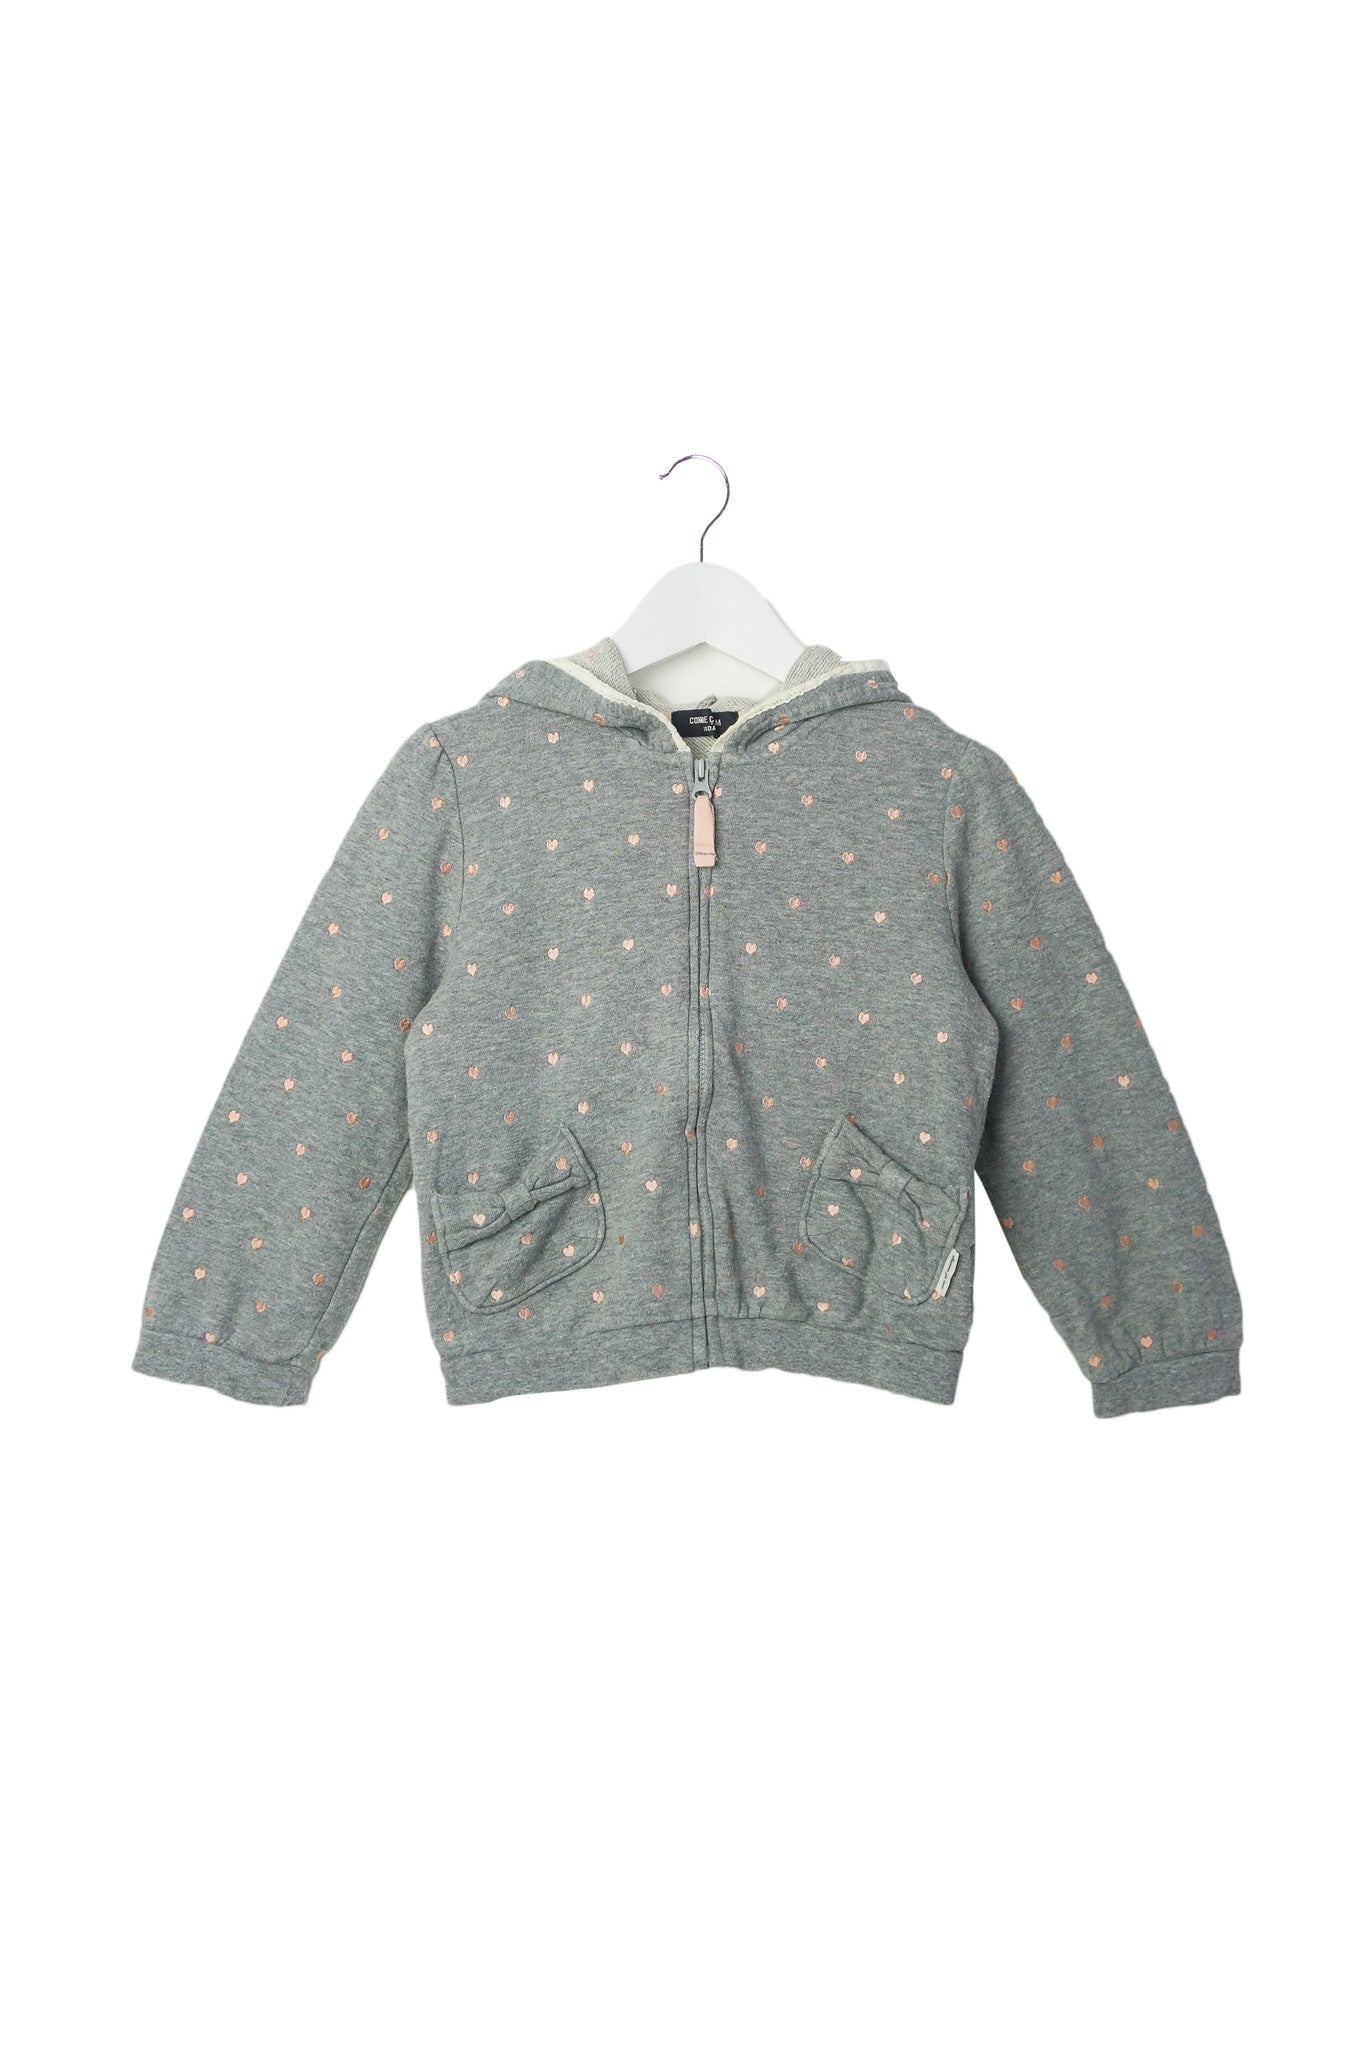 10003078 Comme Ca Ism Kids~Sweatshirt 4-5T (110 cm) at Retykle